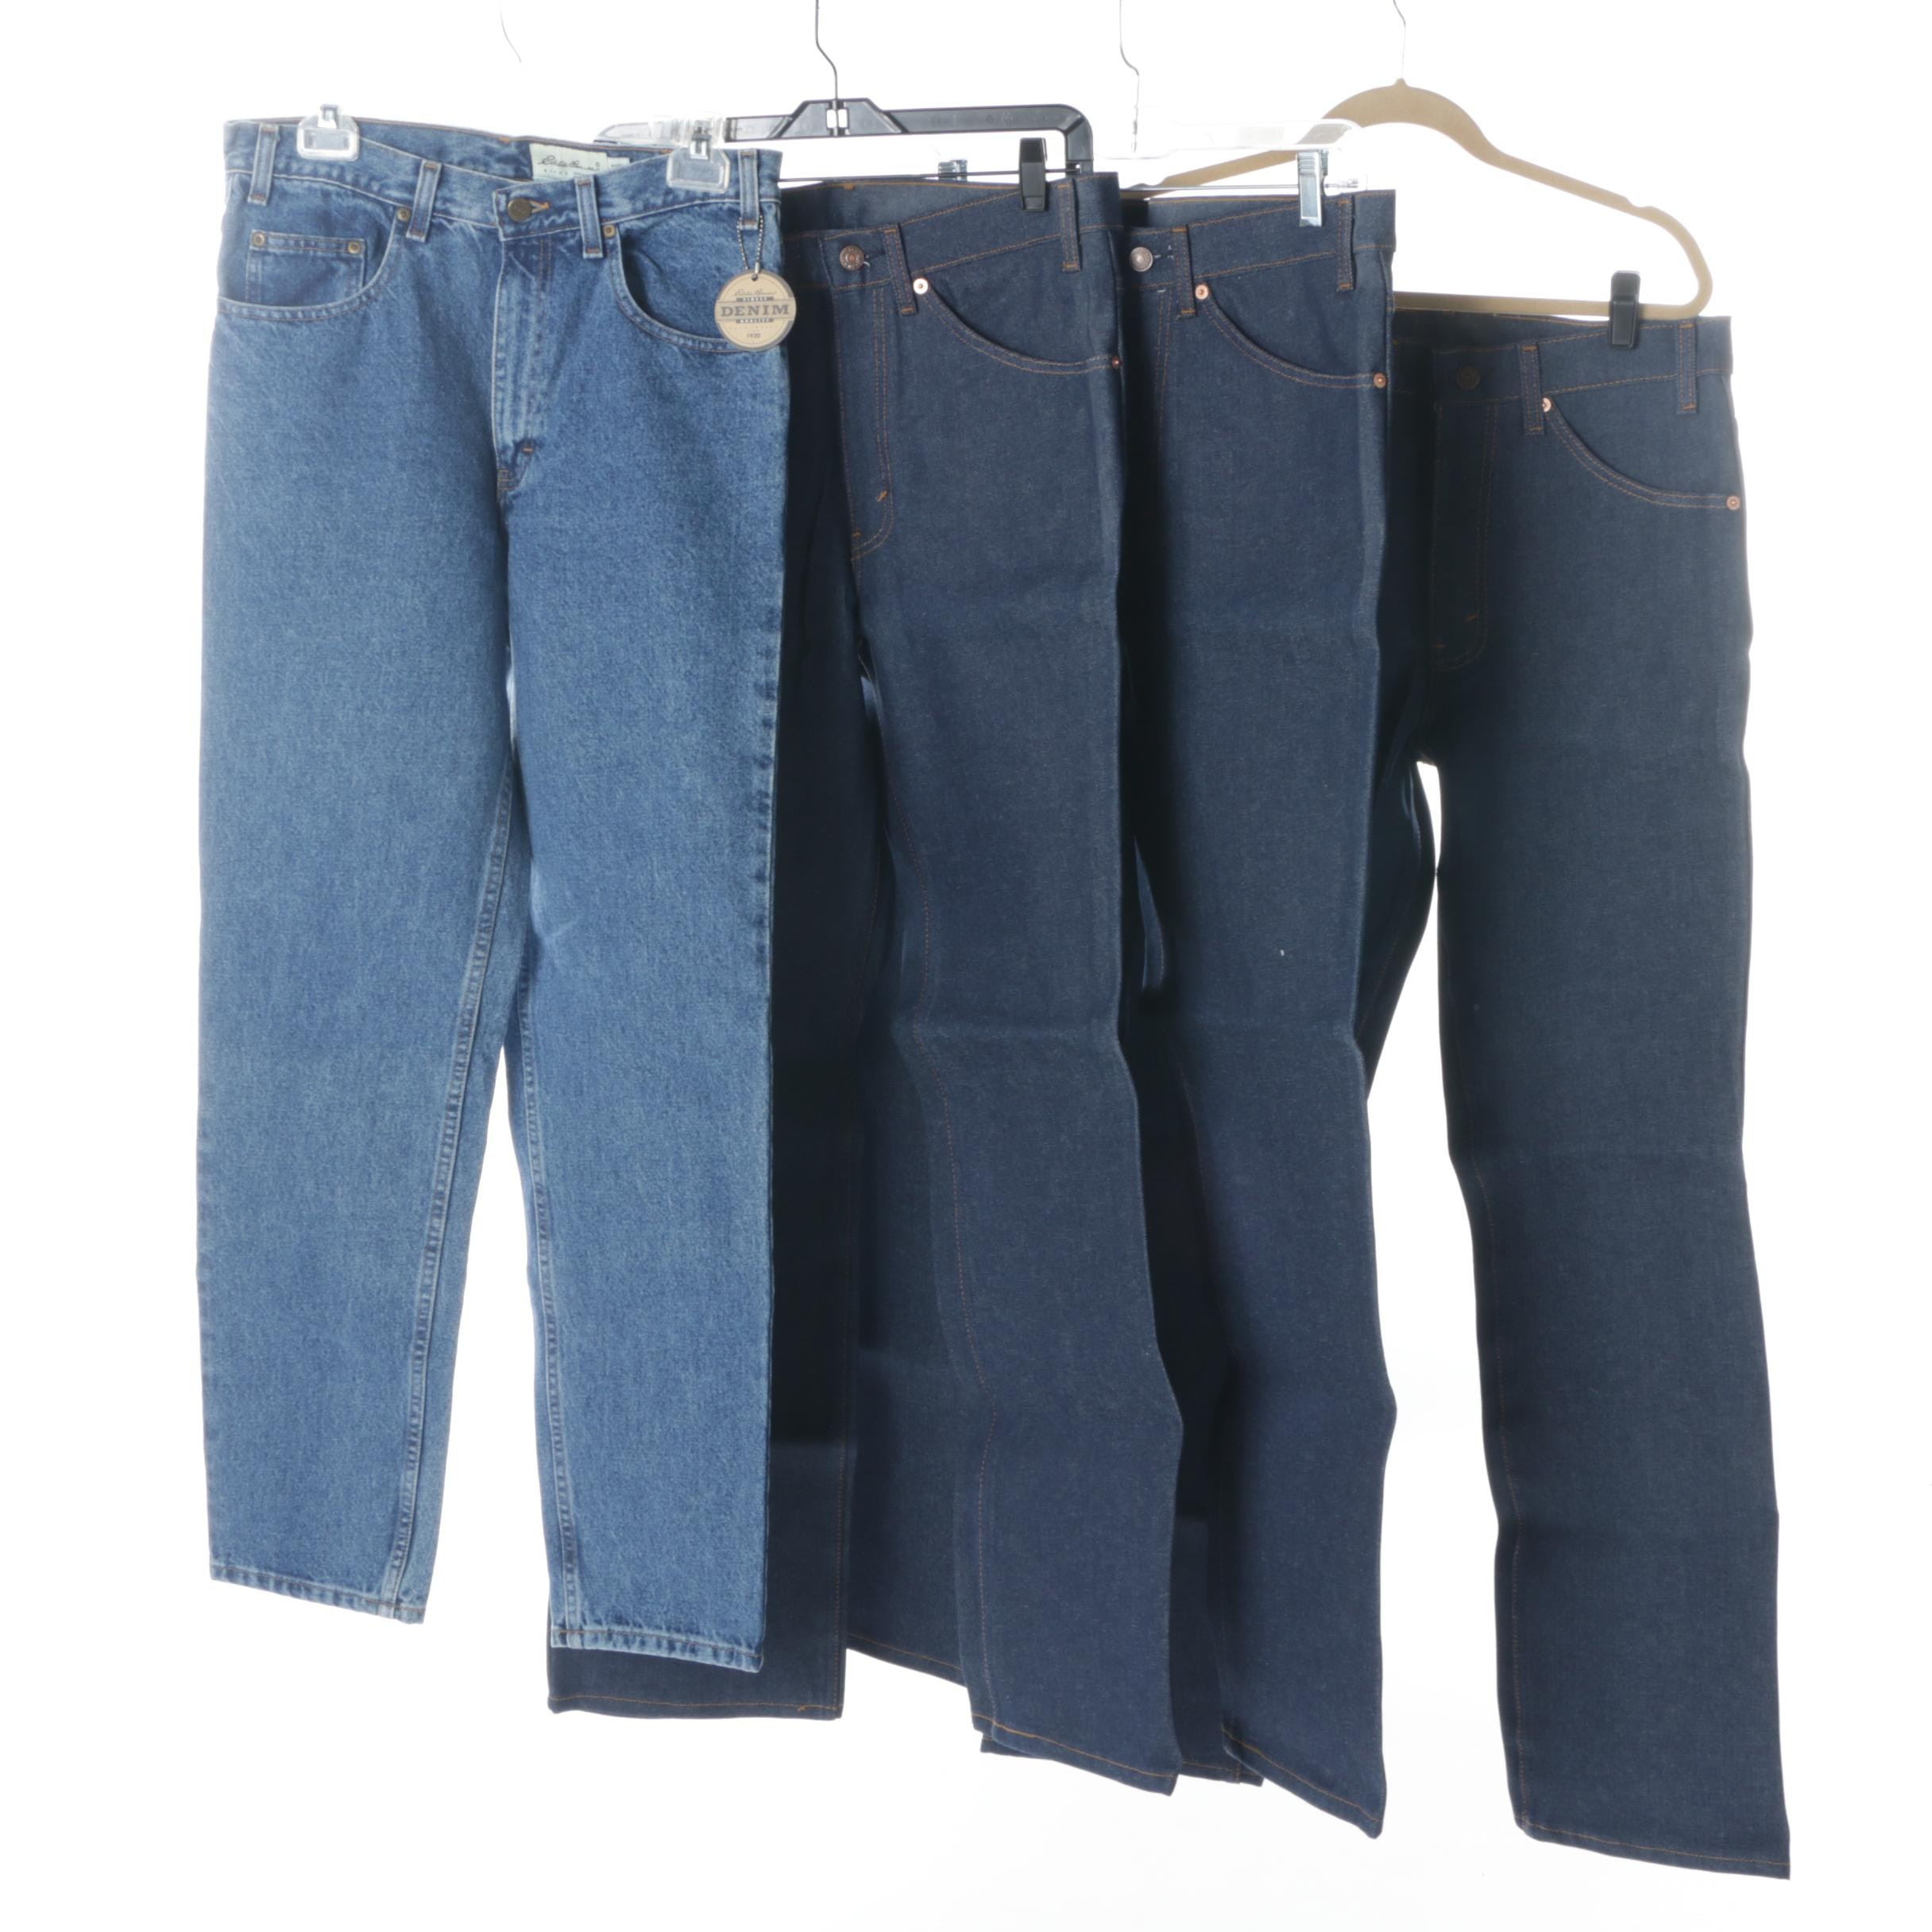 Men's Jeans With Levi's 517